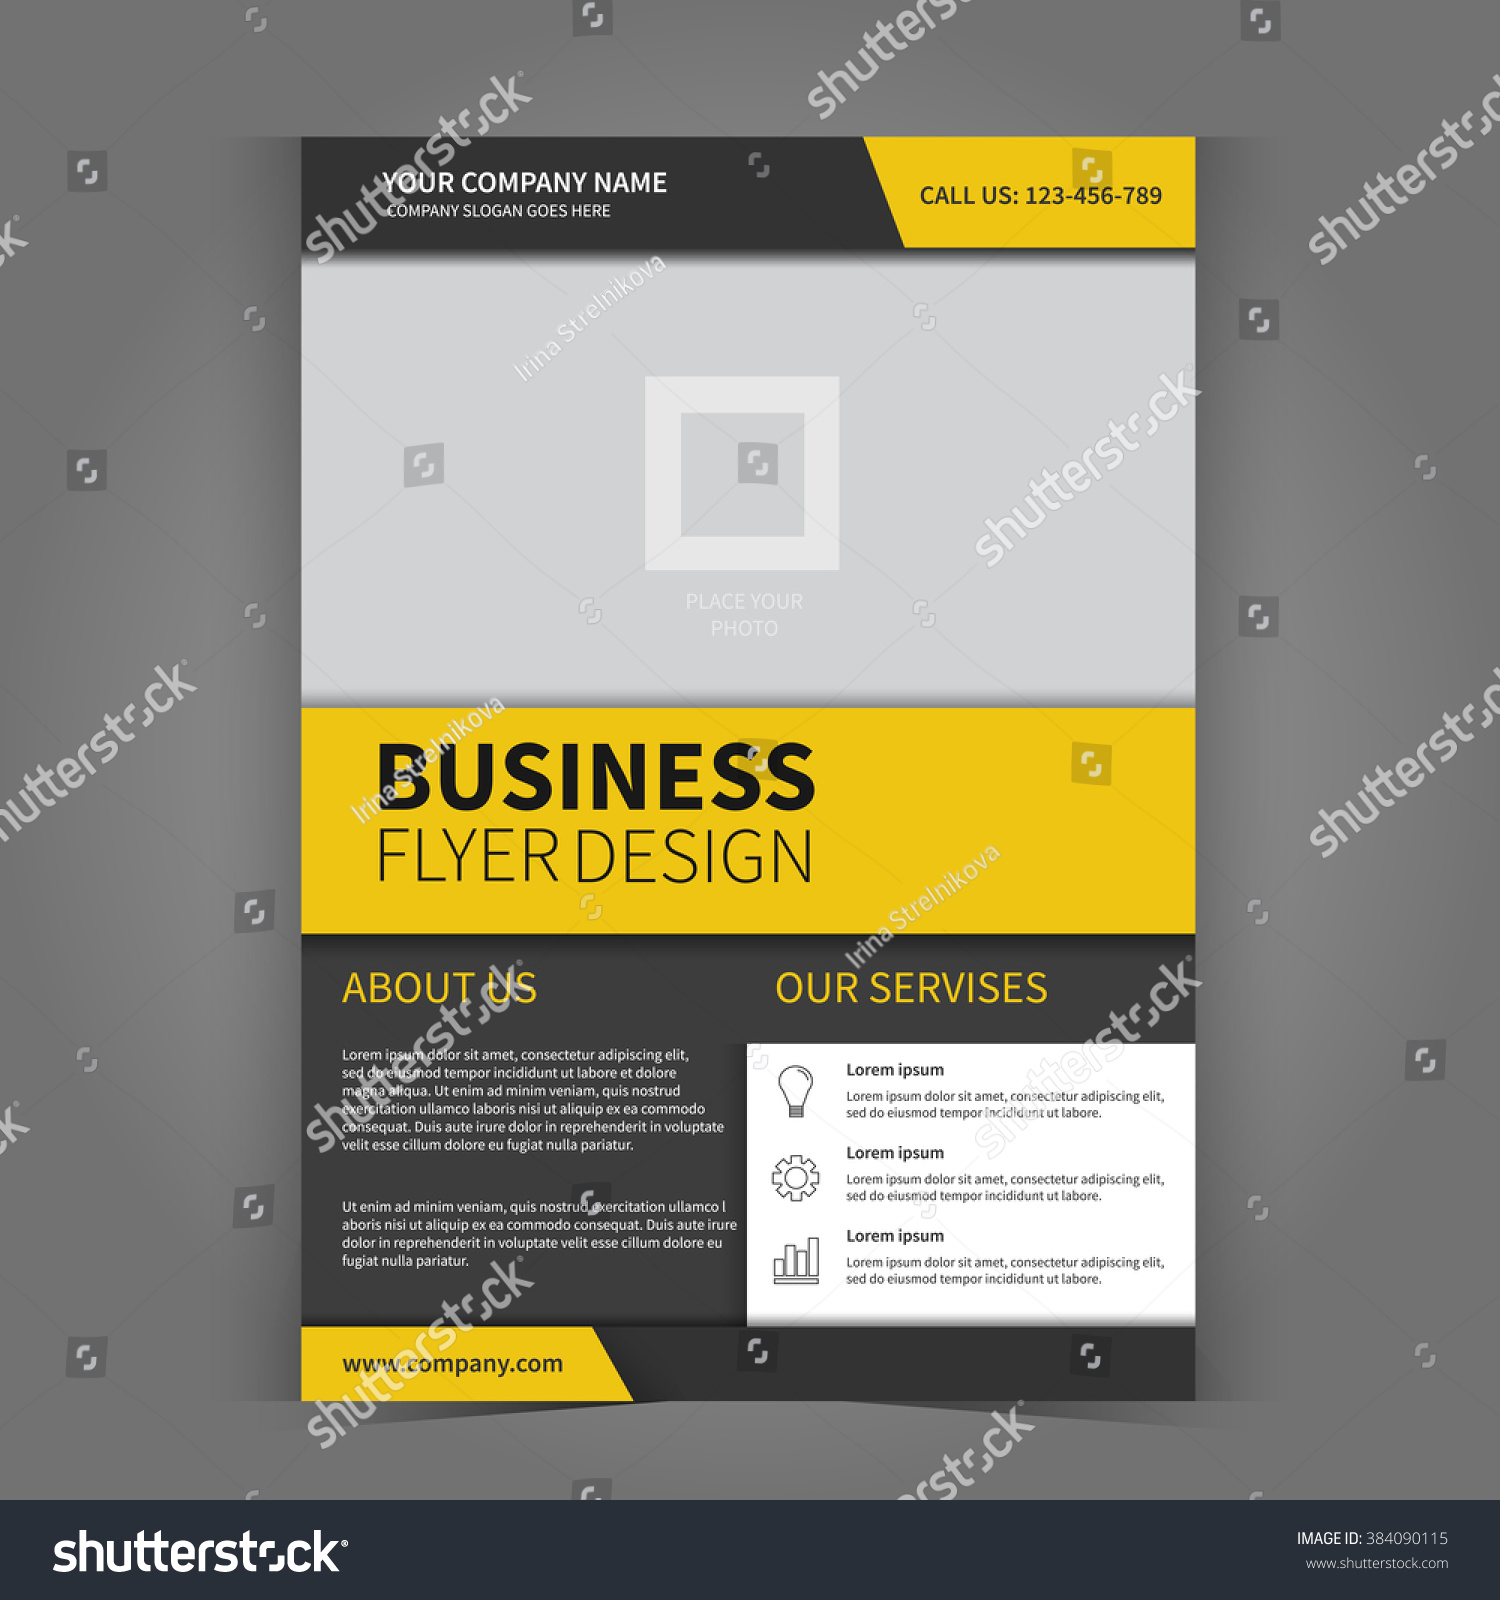 vector business flyer template design flyer stock vector  vector business flyer template design flyer place for pictures poster template for your